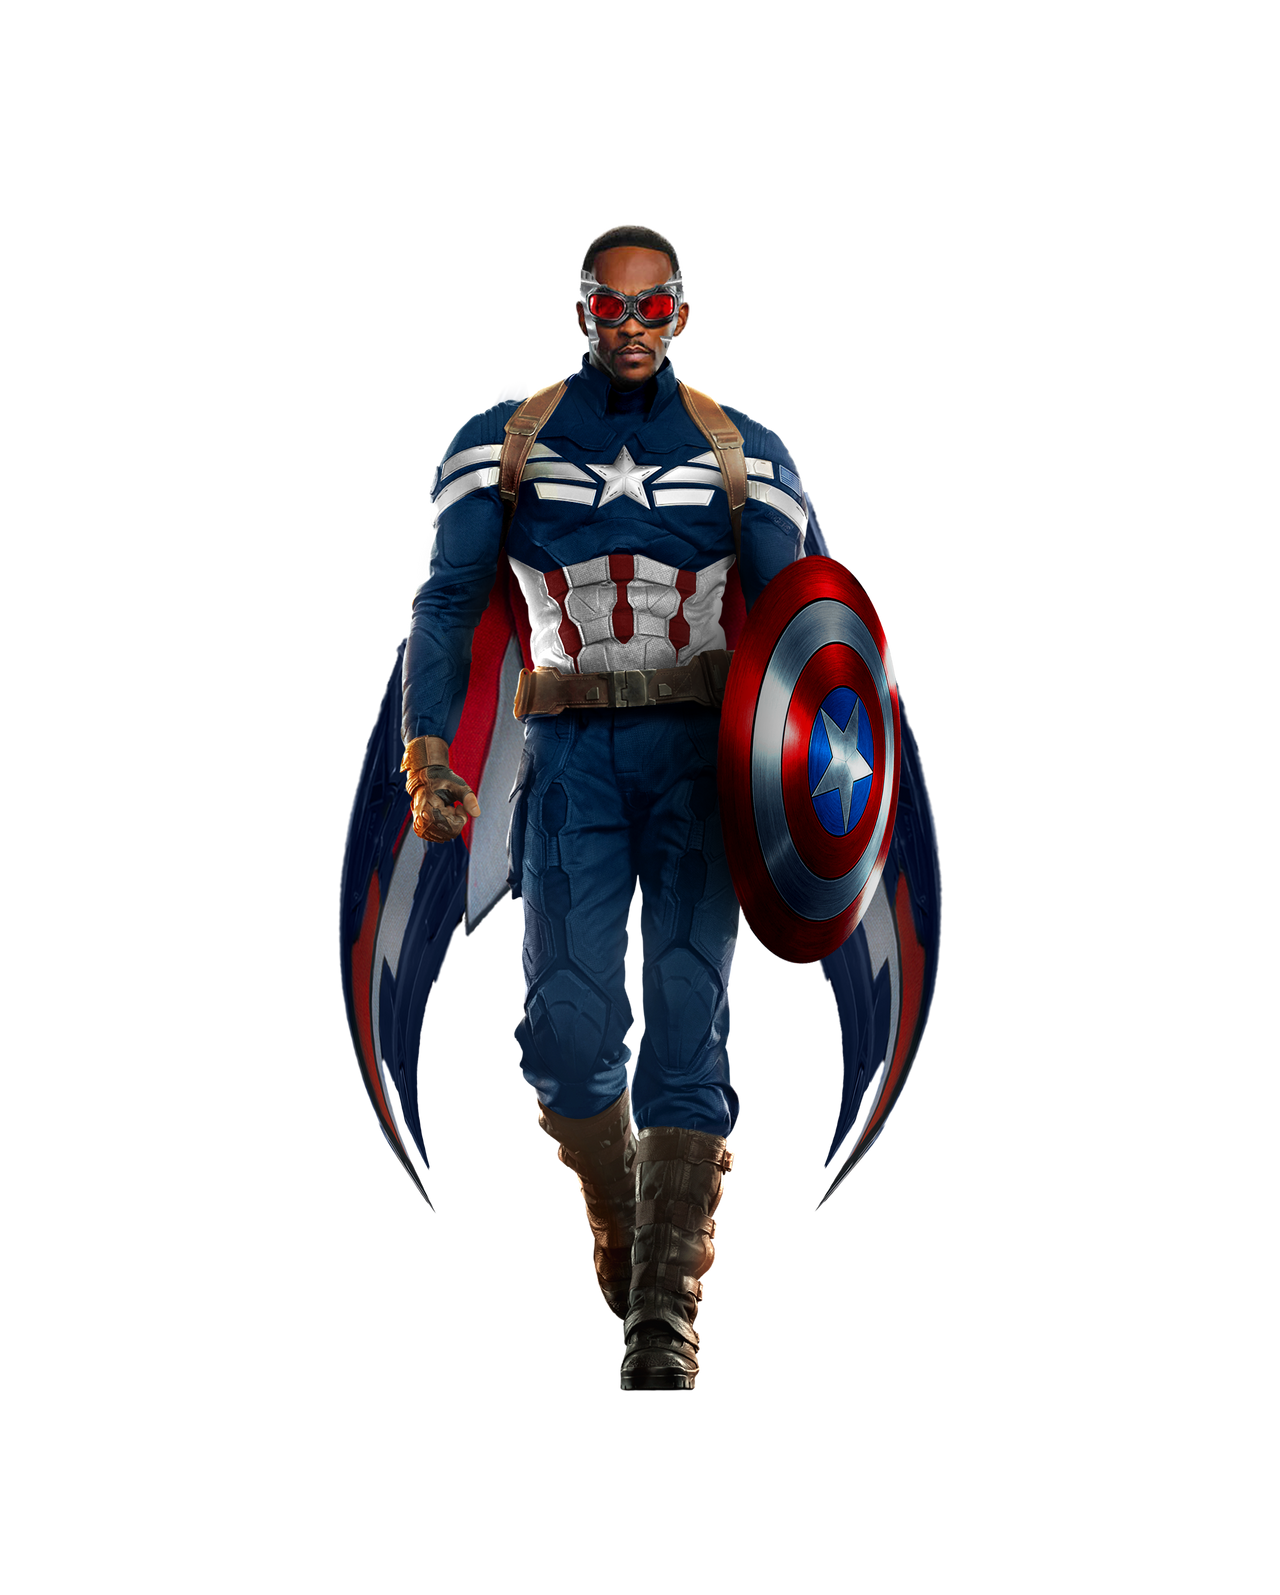 Falcon as Captain America PNG by itsharman on DeviantArt